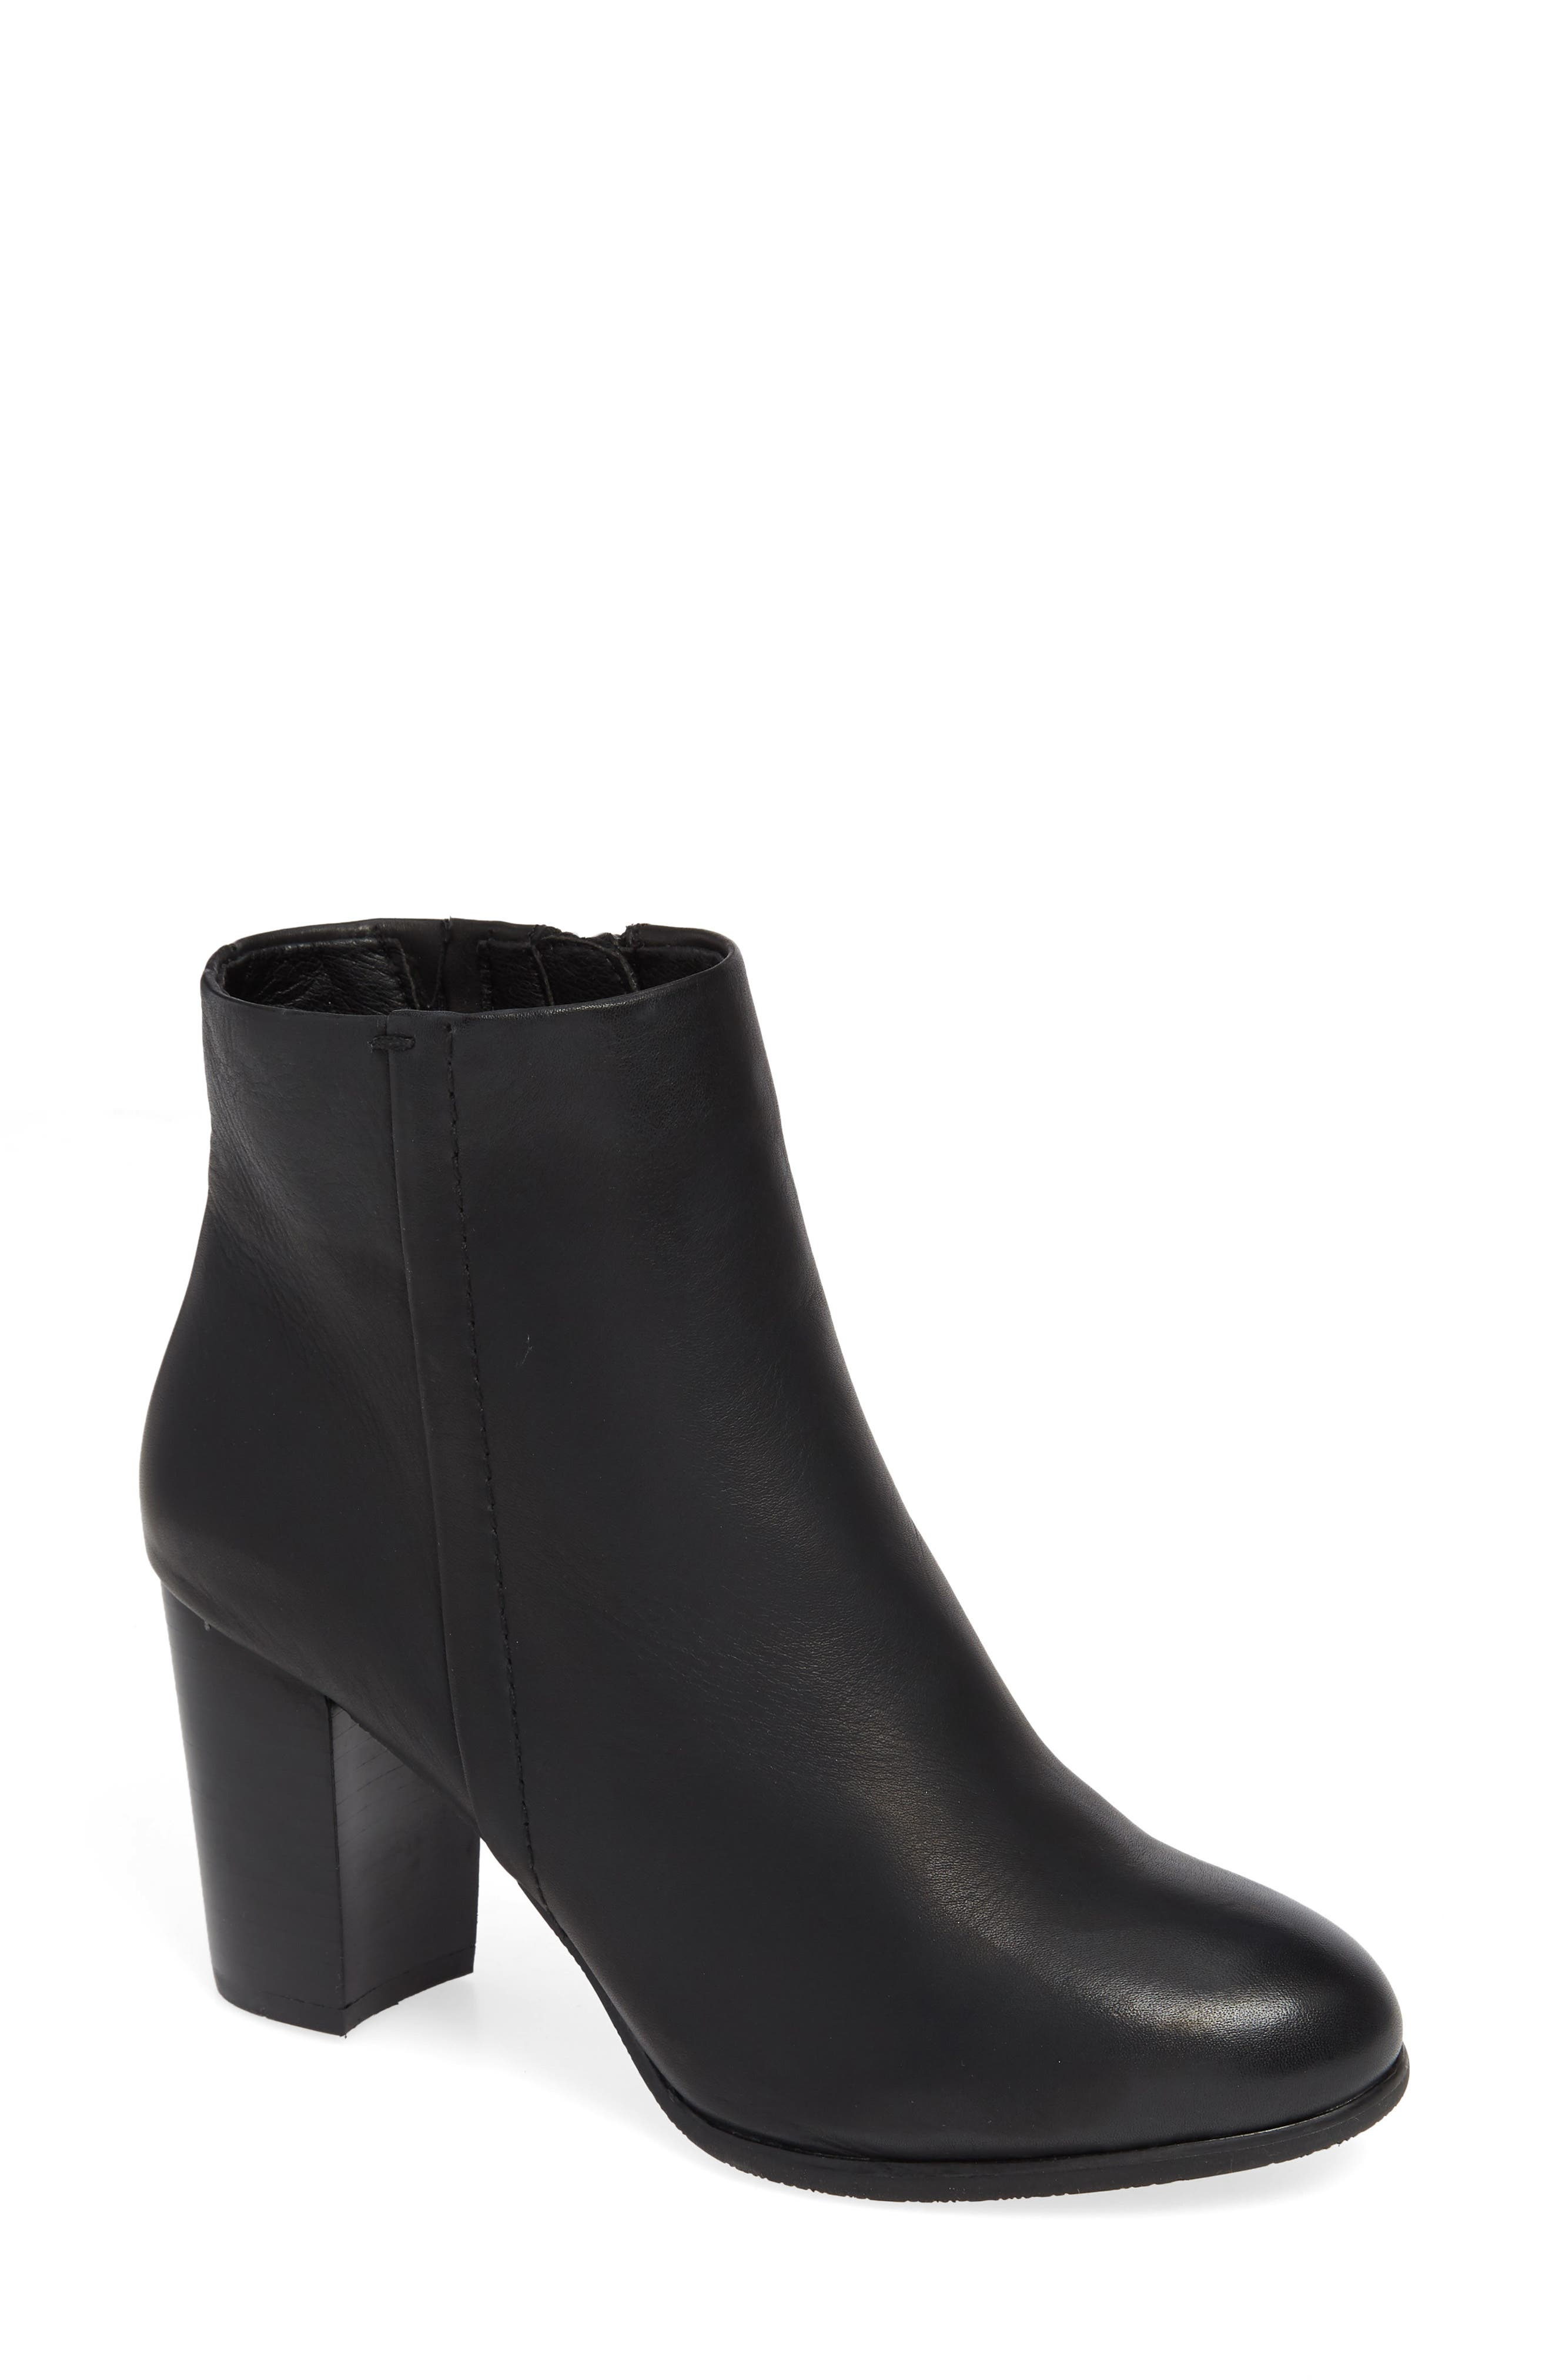 Vionic Kennedy Ankle Bootie, Black